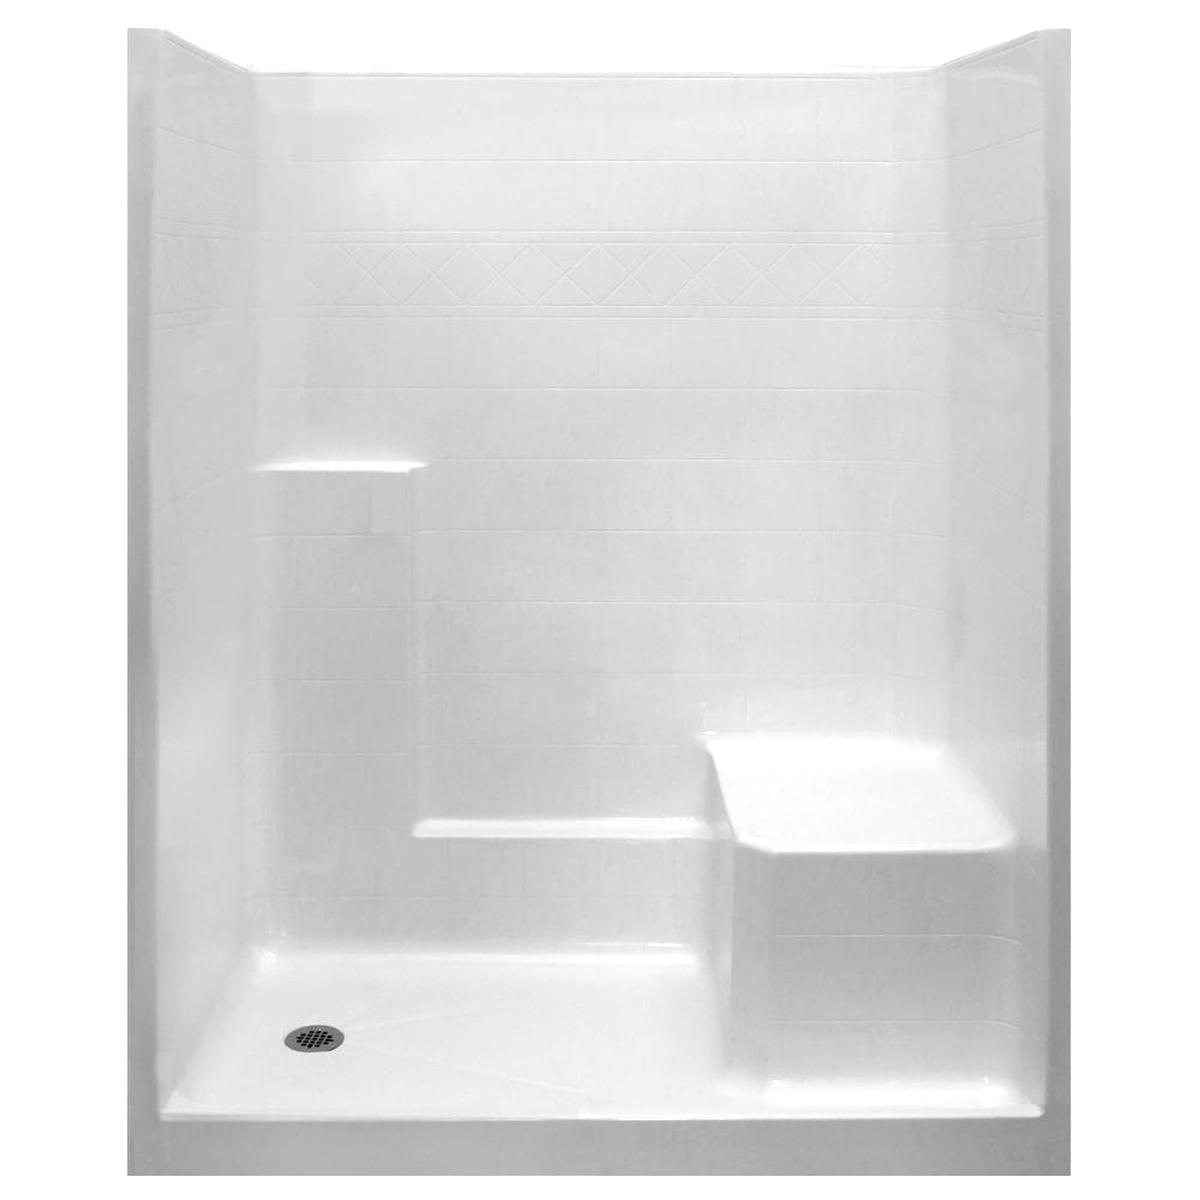 Used Shower Stalls For Sale.Shower Stall For Sale Only 4 Left At 65